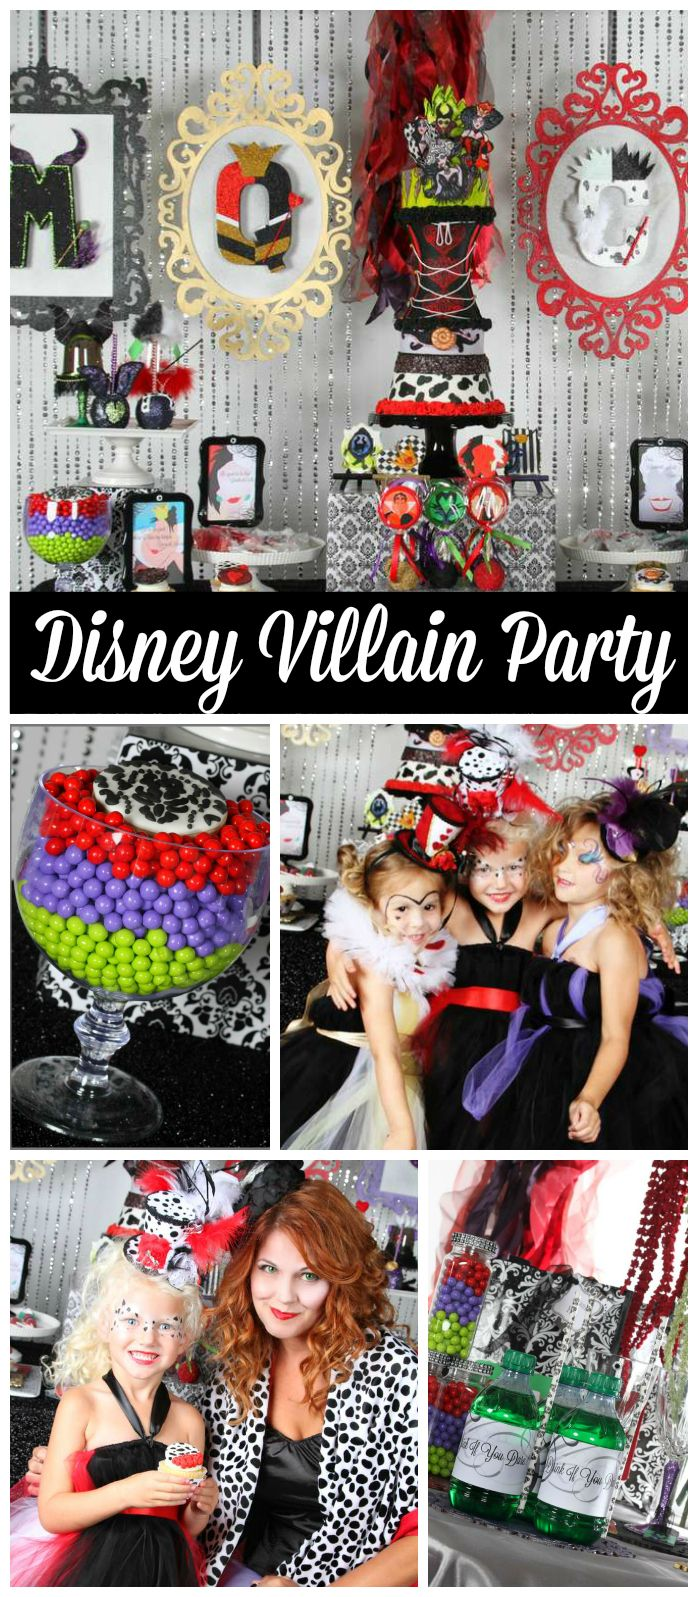 A glamorous Disney villain Mommy and Me party with dress up and a fantastic dessert table! WOW!!!